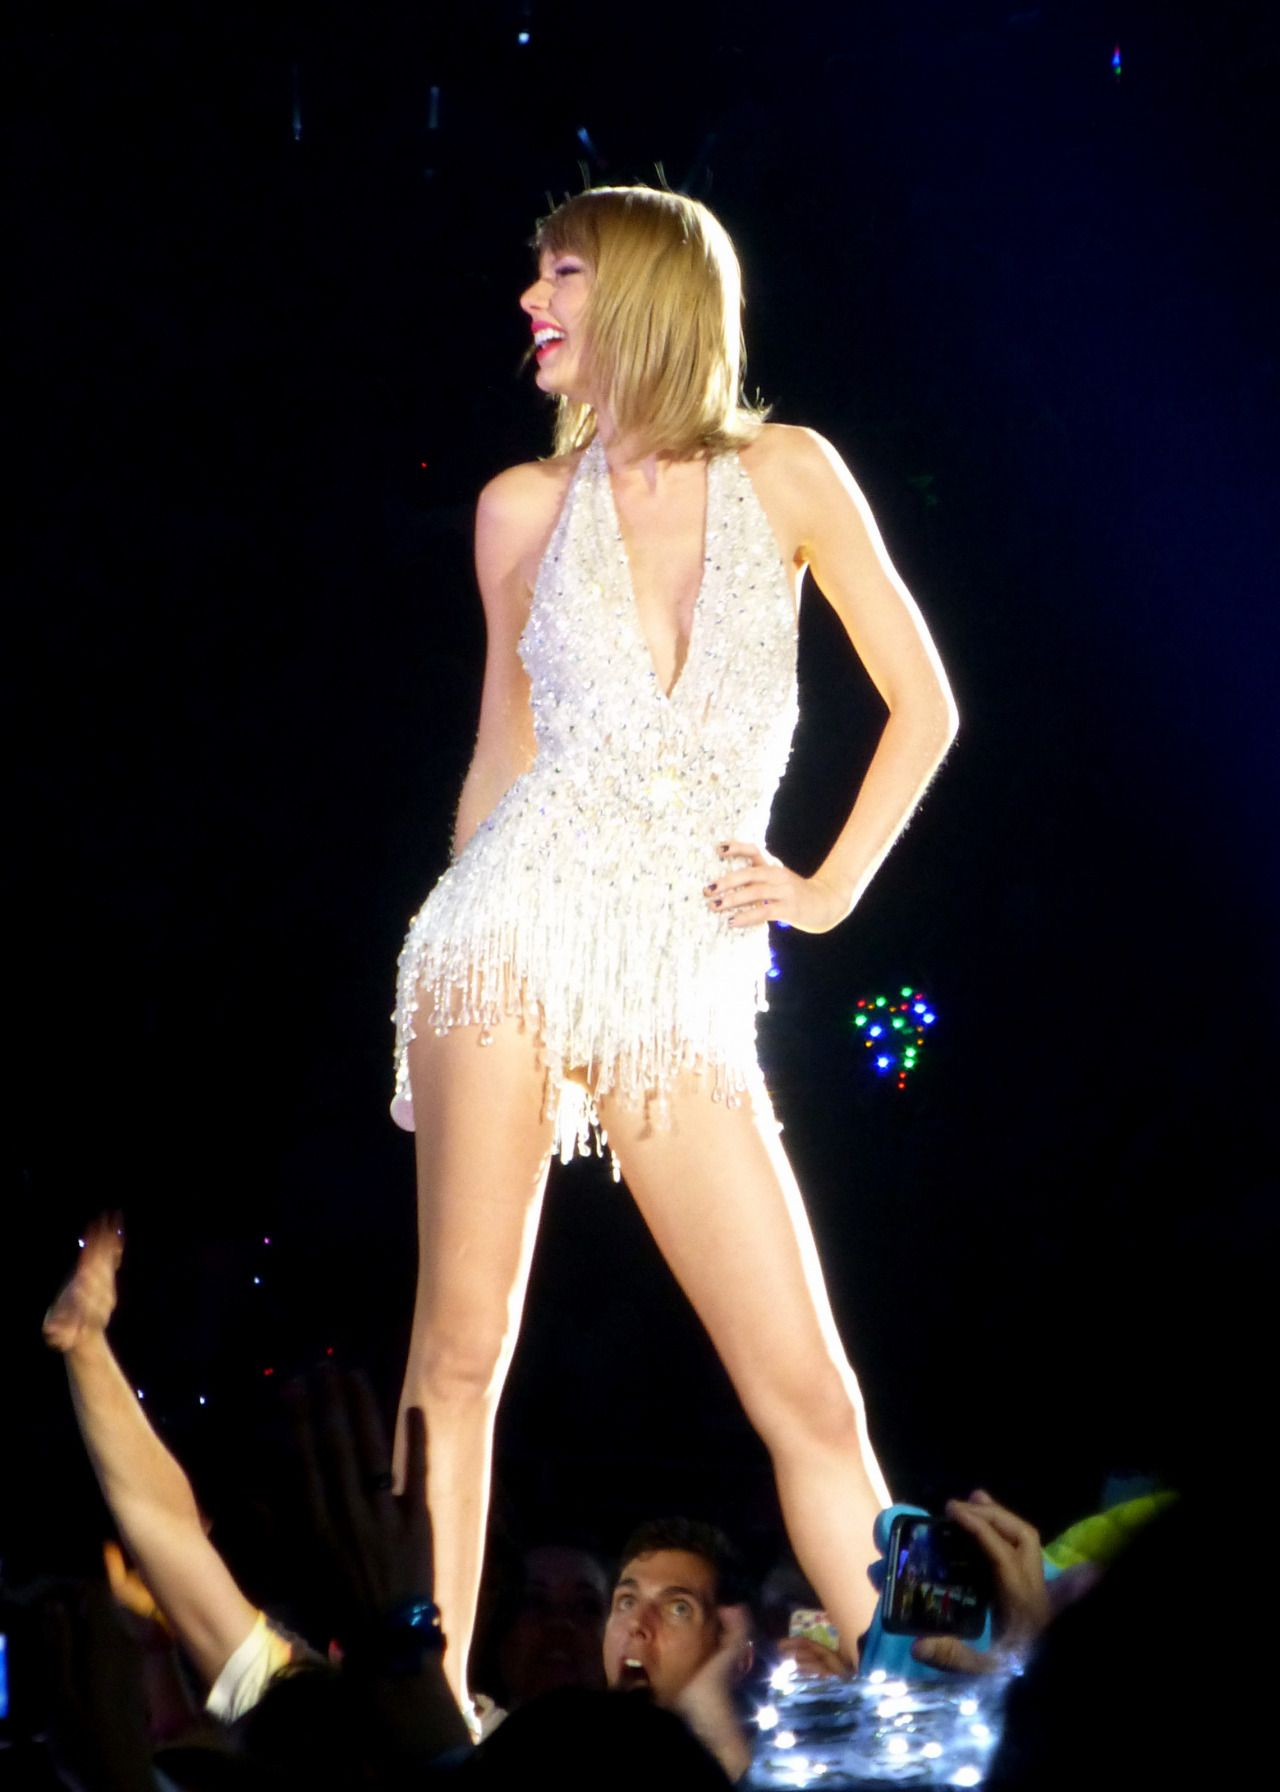 Taylor Swift Performing Style 1989 World Tour Detroit Taylor Swift Concert Taylor Swift Hot Taylor Swift